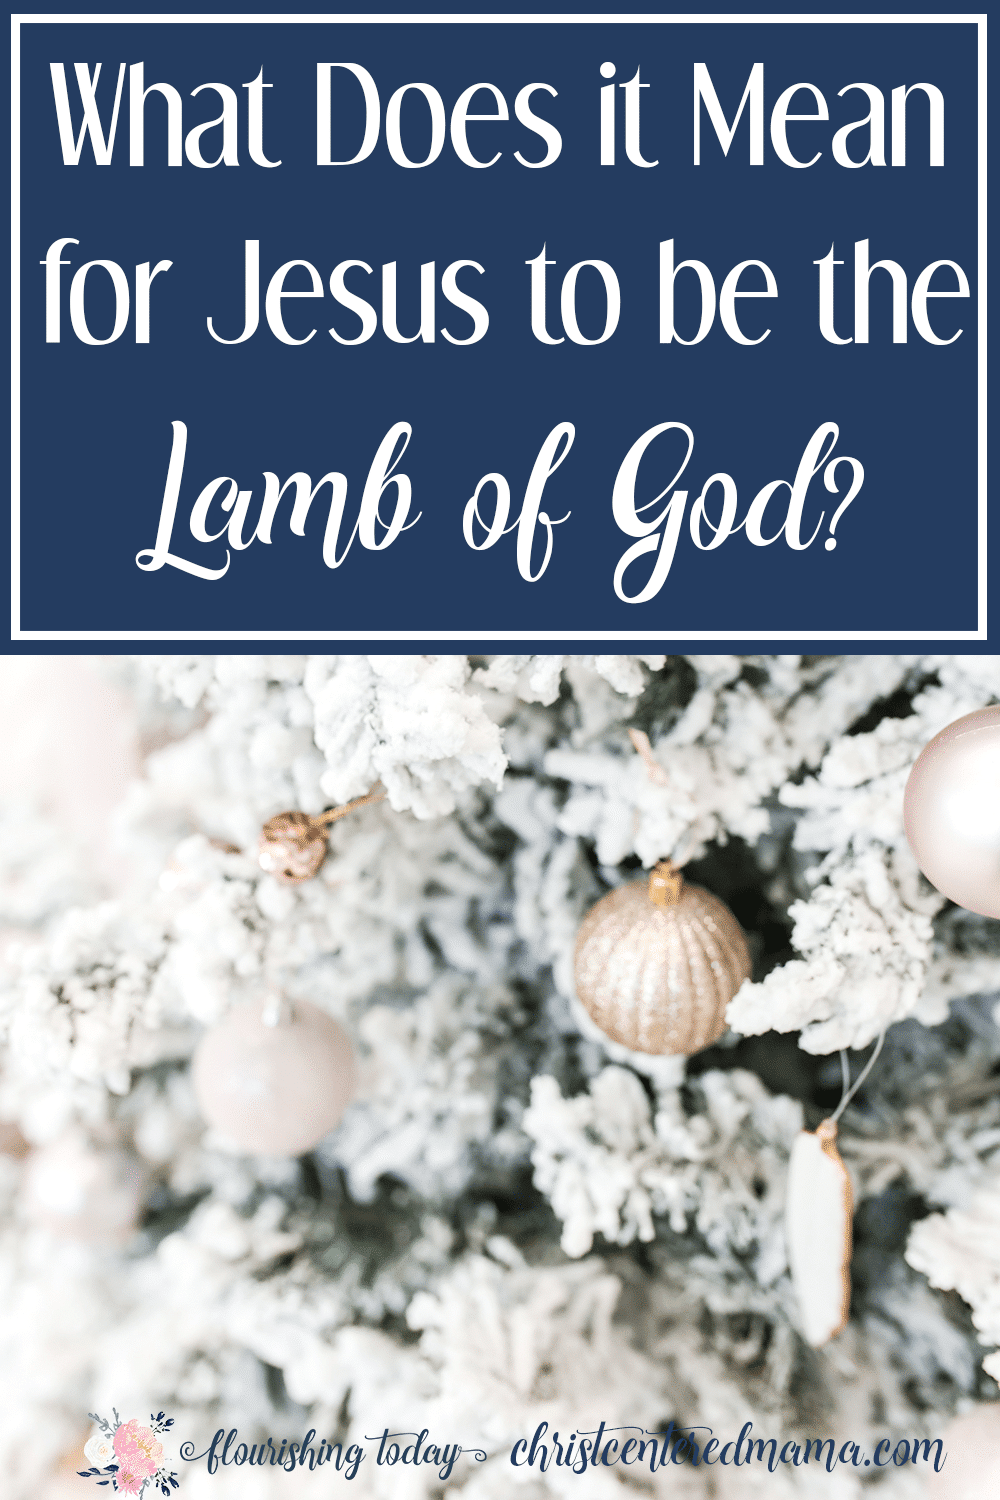 What does it for Jesus to be the Lamb of God? Join us this Christmas as we study the names of Jesus and learn about the Lamb of God.